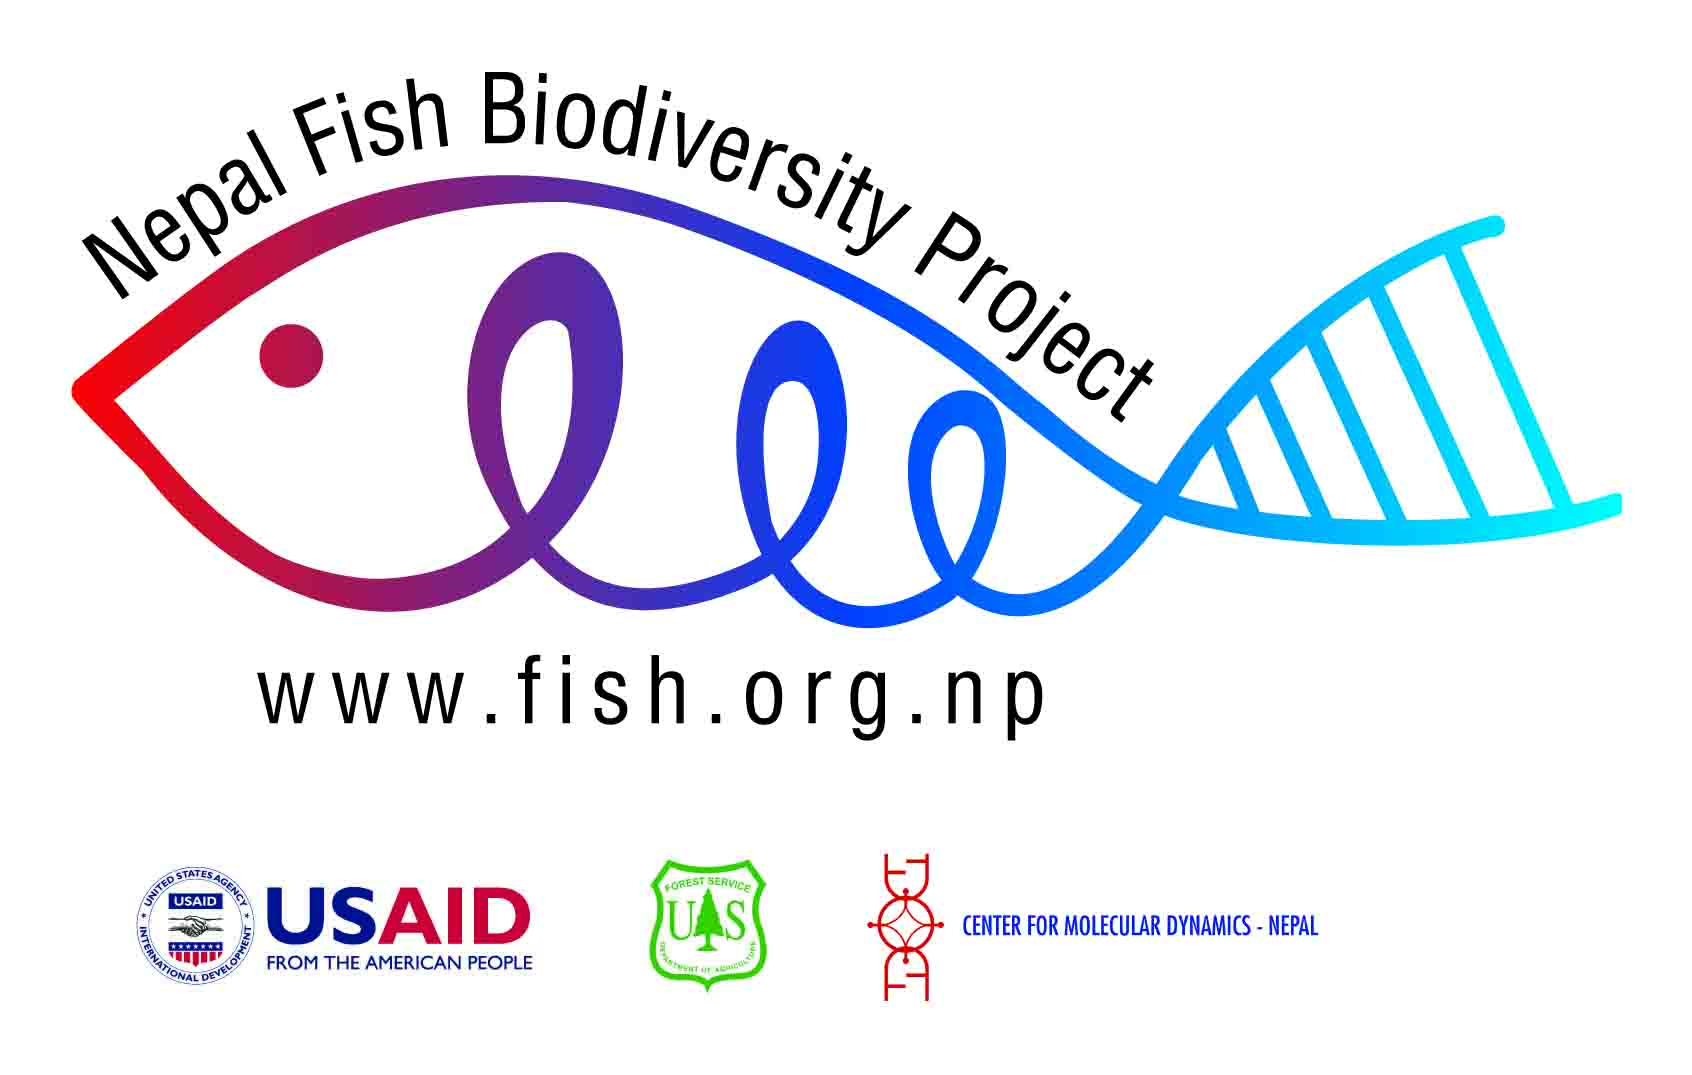 Nepal Fish Biodiversity Project